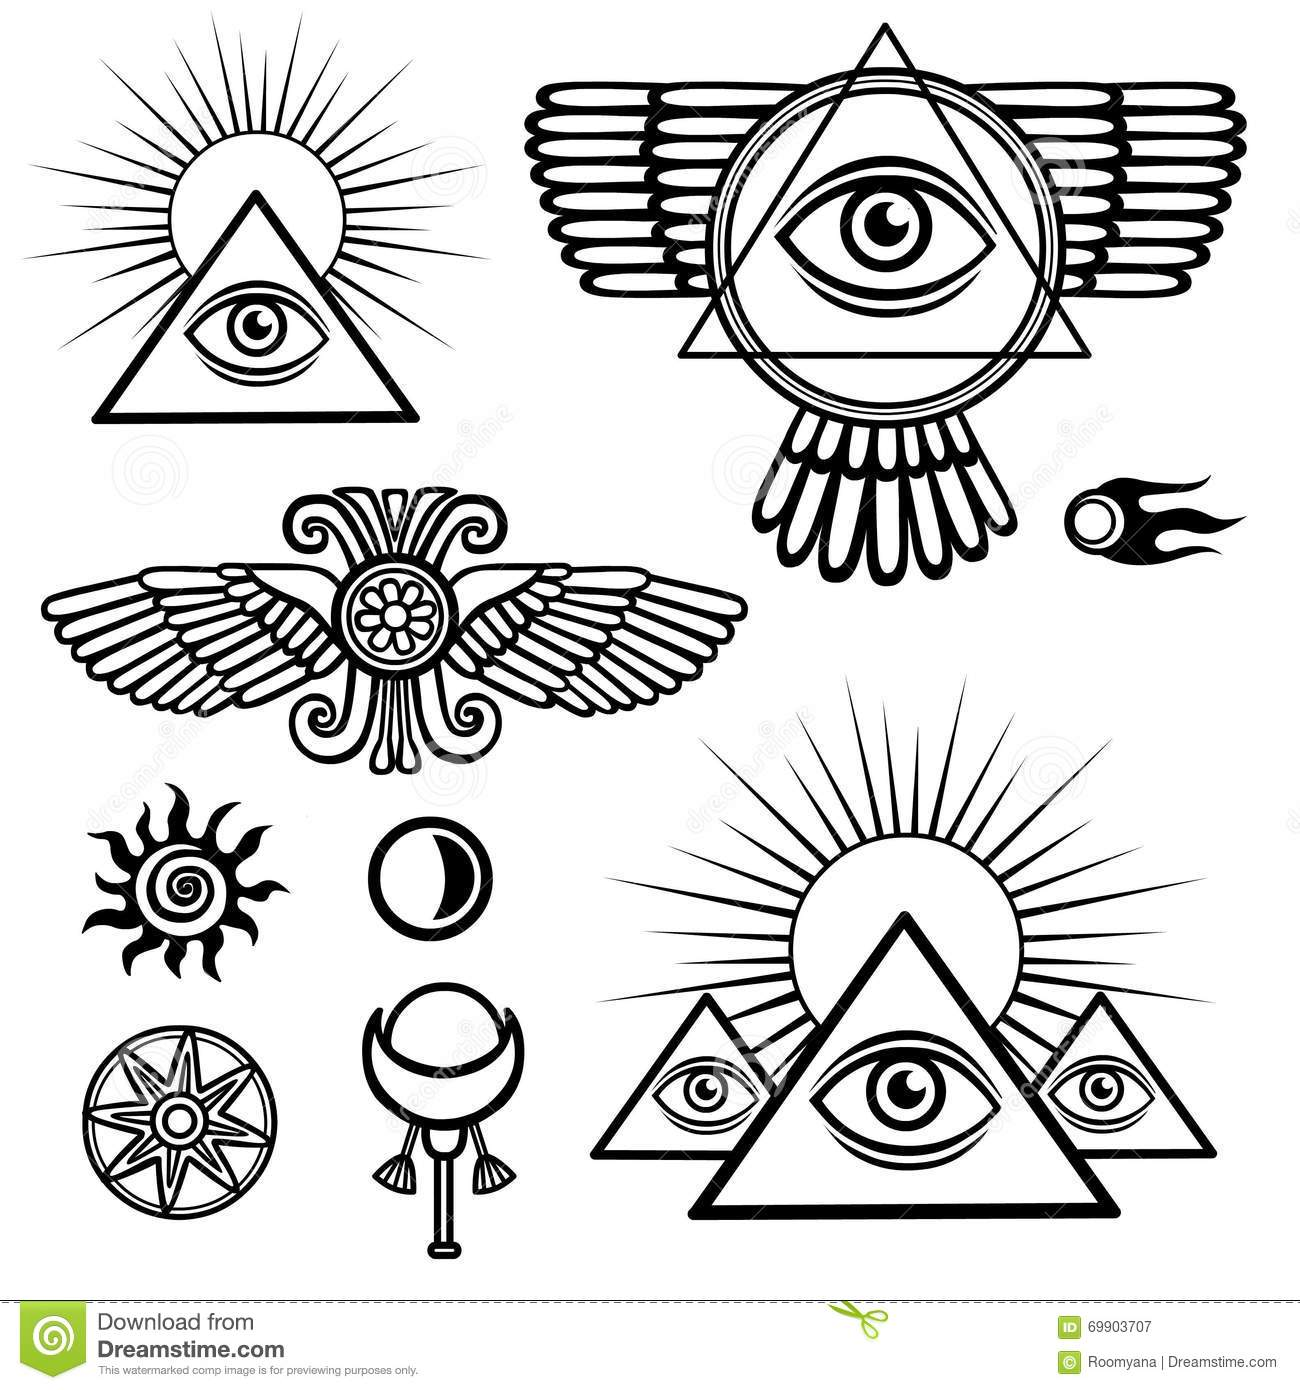 Set of esoteric symbols wings pyramid eye moon sun comet star set of esoteric symbols wings pyramid eye moon sun comet star biocorpaavc Images